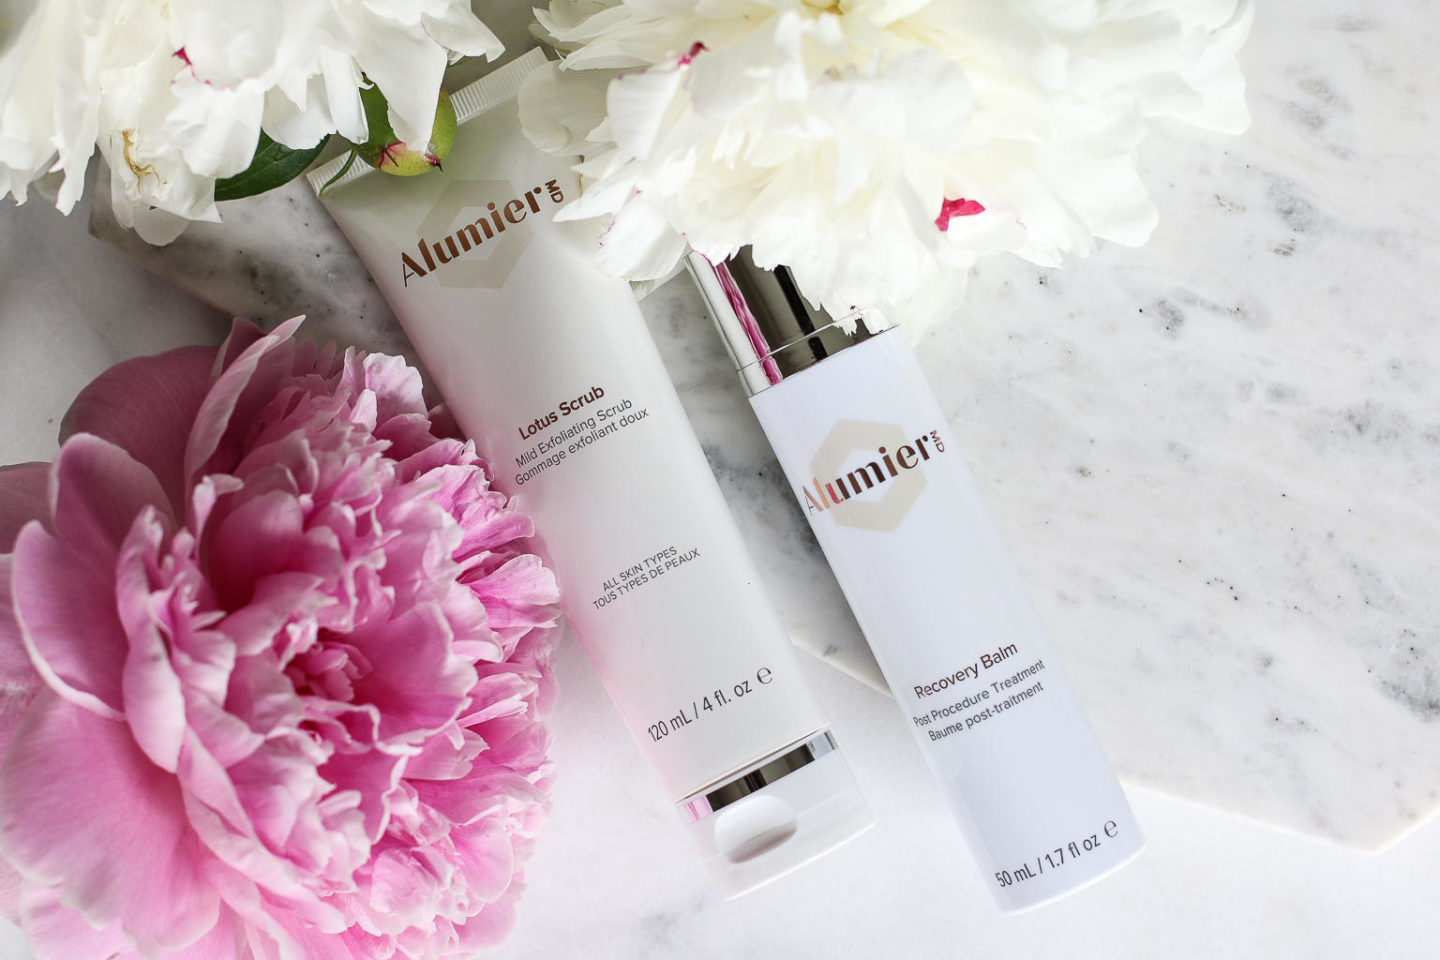 How To Care For Your Skin In Between MediSpa Treatments – AlumierMD Recovery Balm and Lotus Scrub